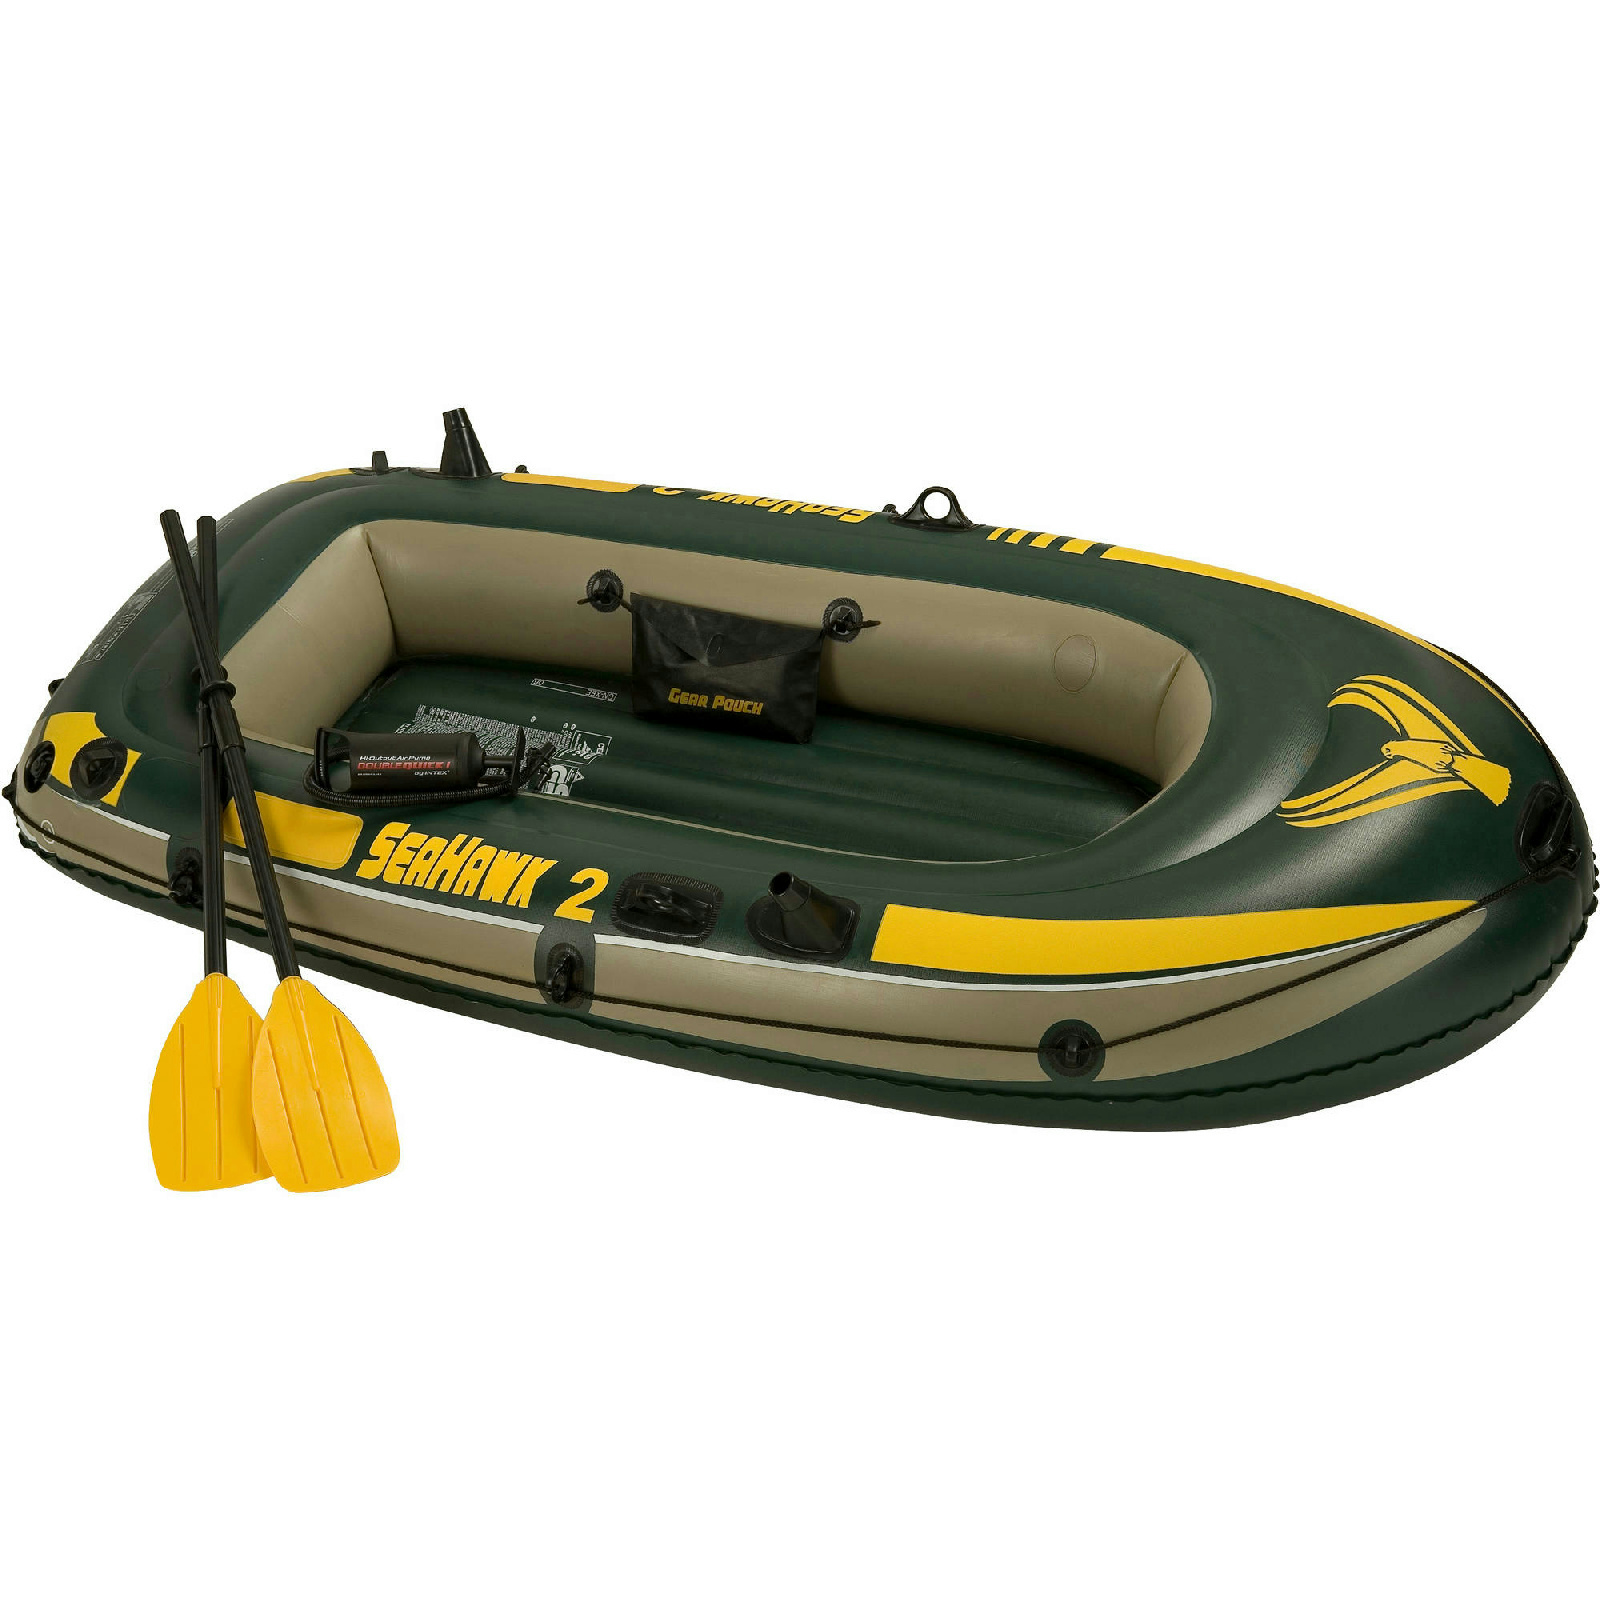 Details about intex inflatable seahawk 2 two person boat w oars amp pump